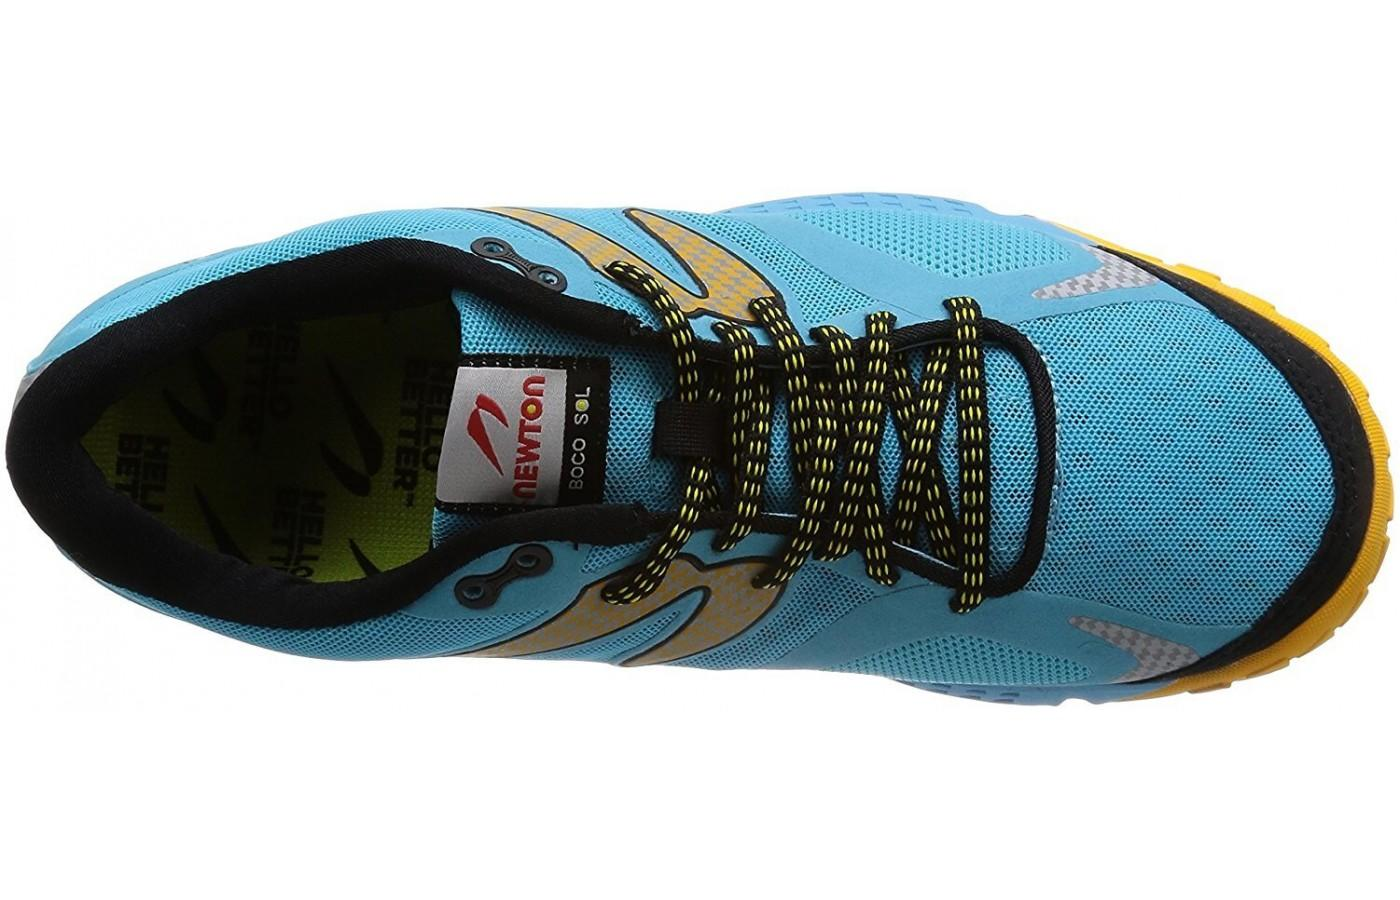 the Newton BoCo Sol features a highly breathable upper